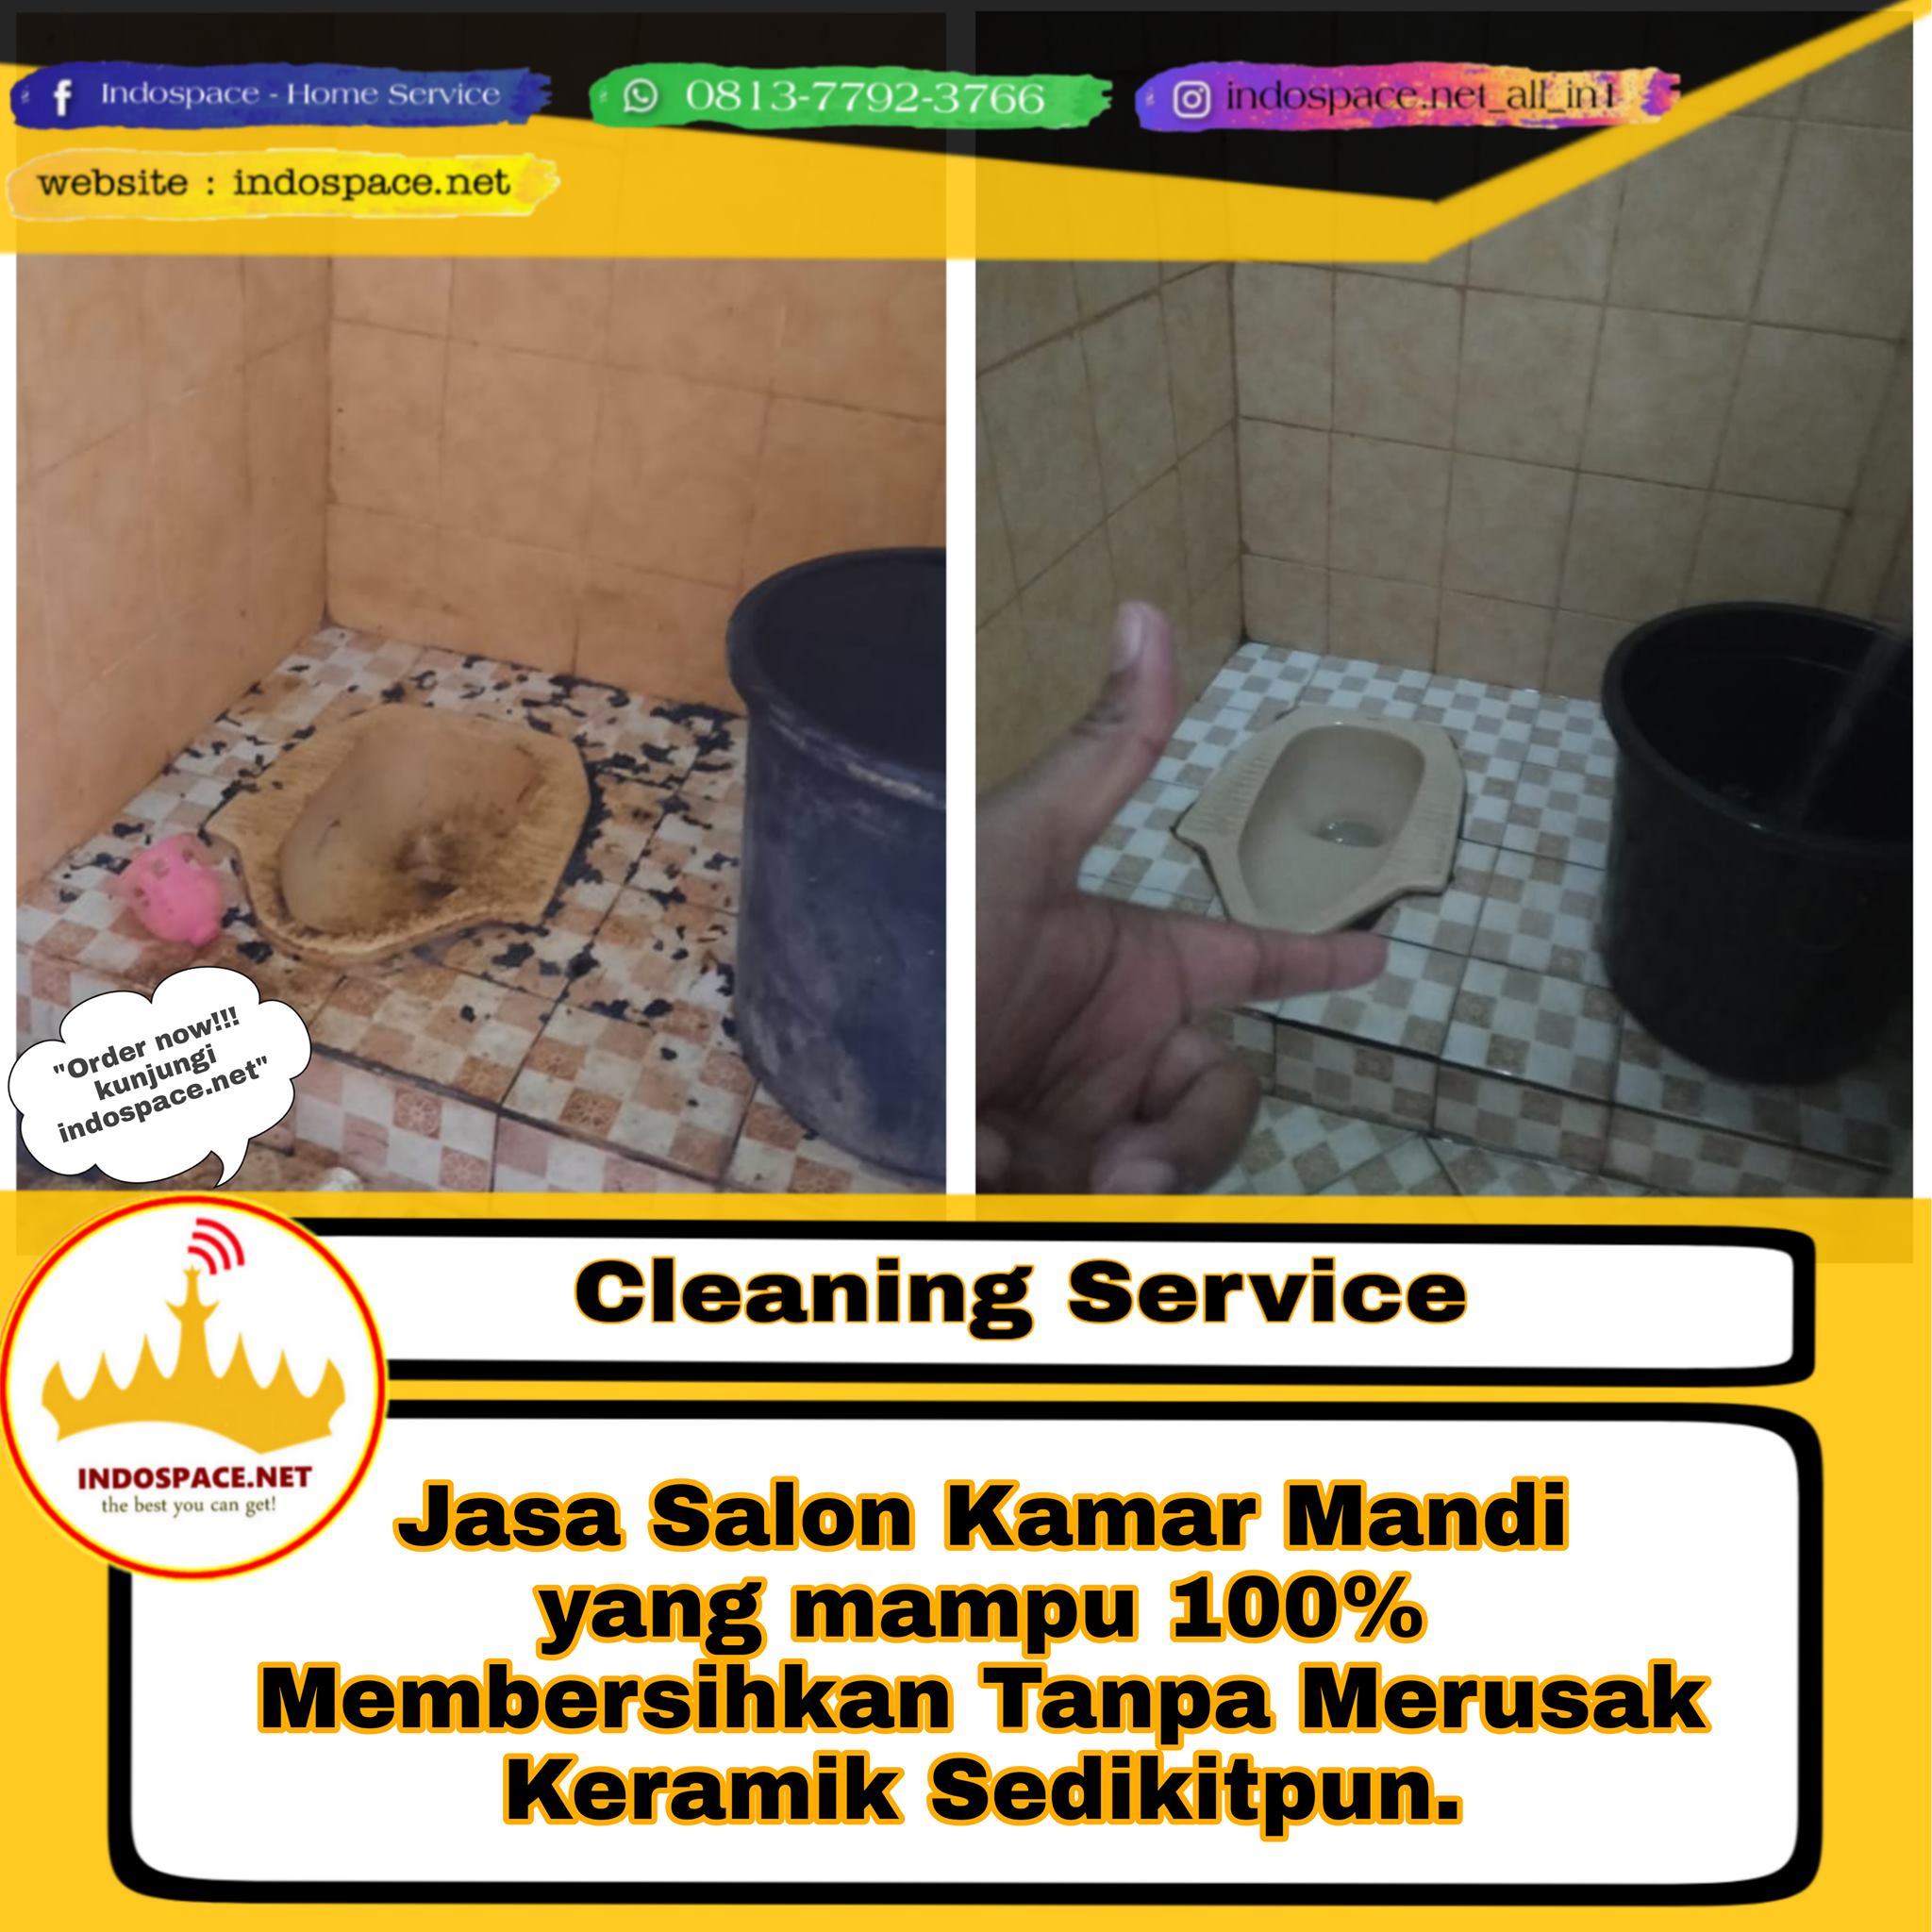 cleaning service indospace